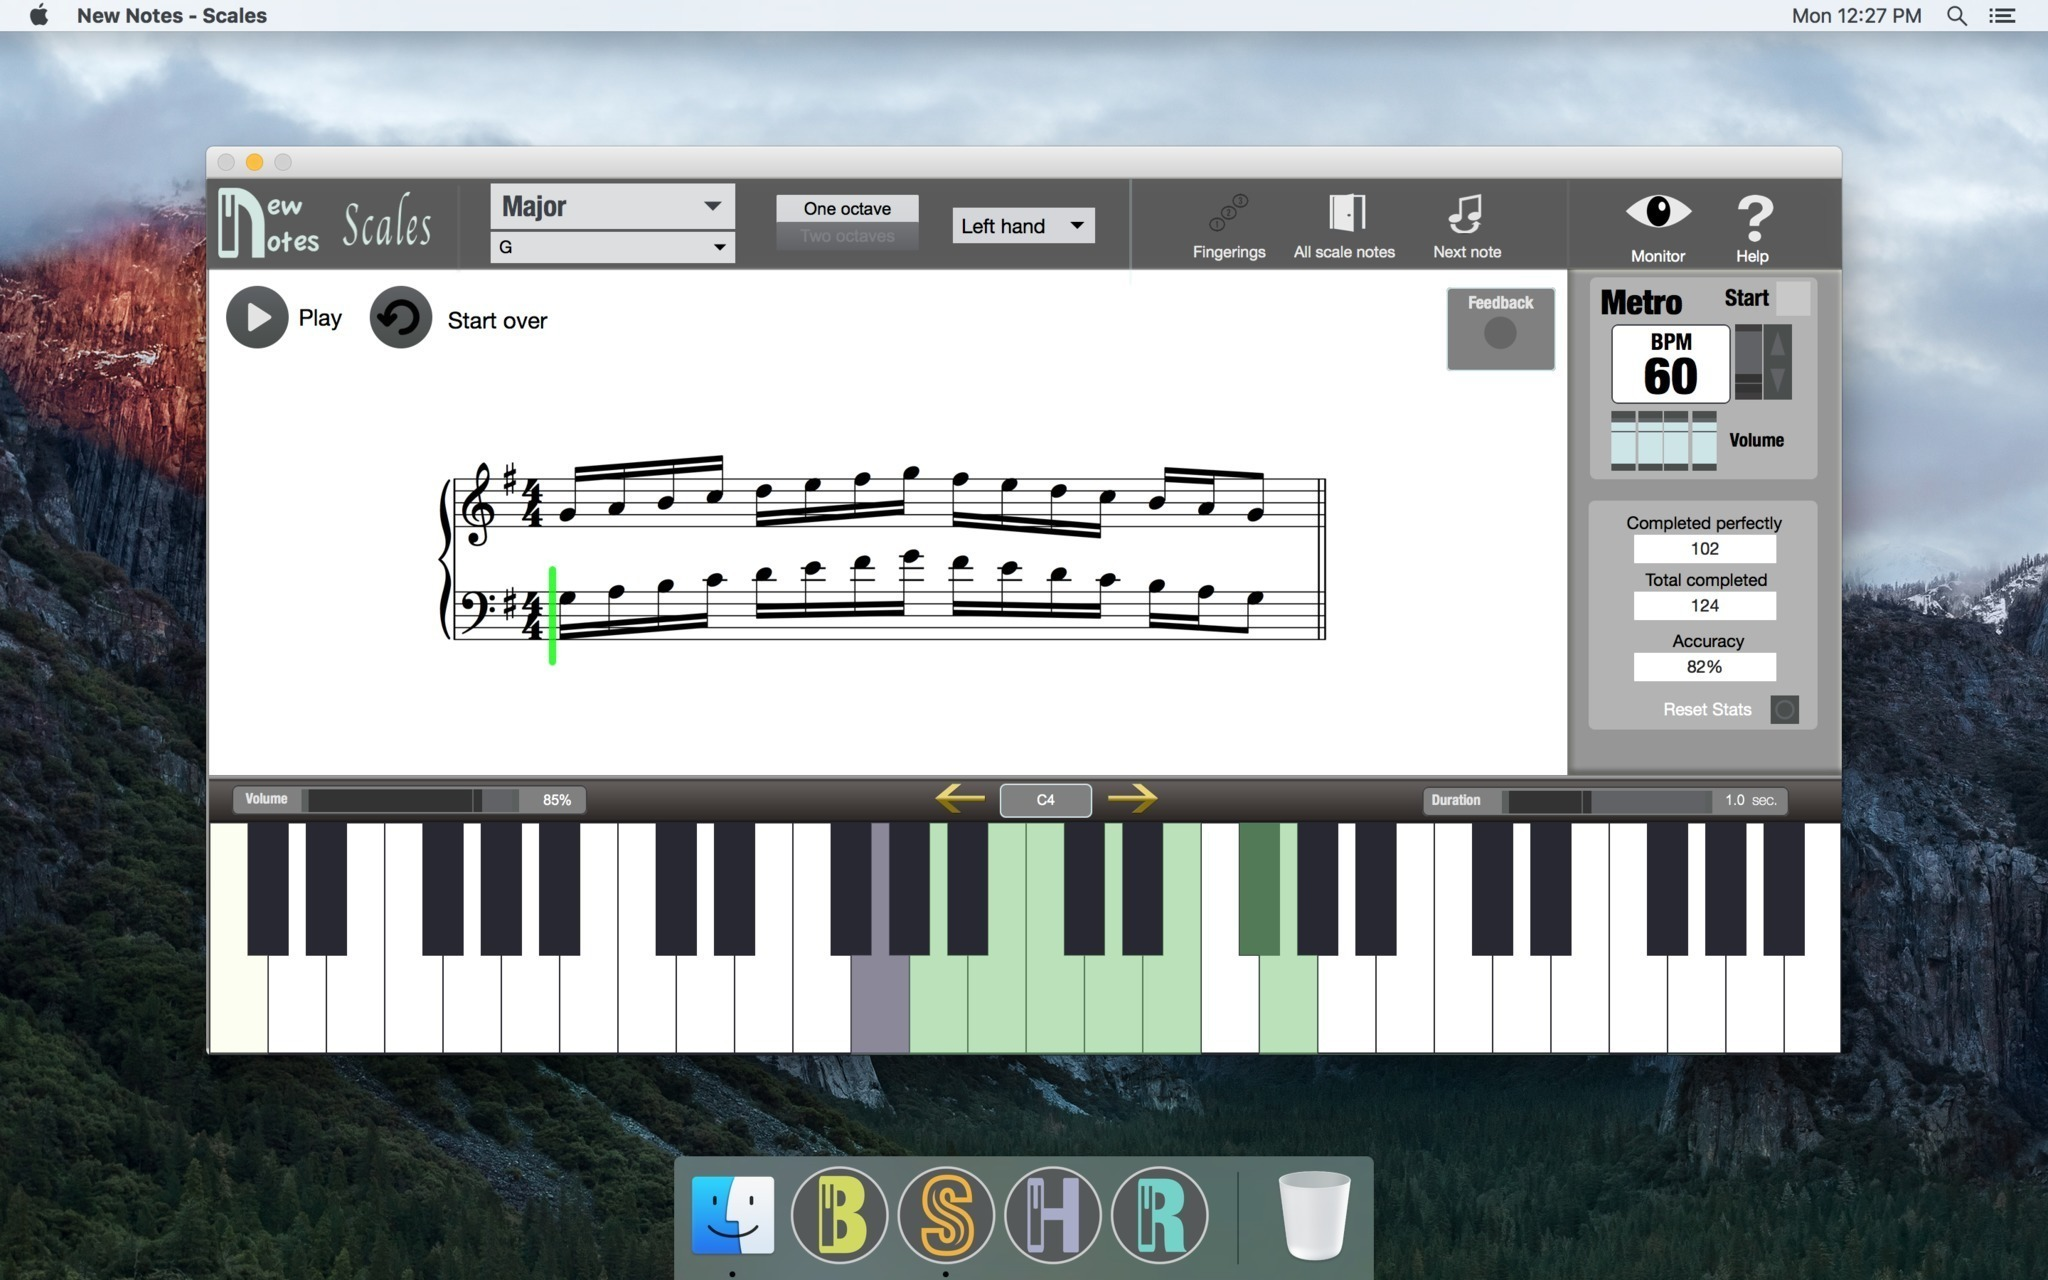 Screenshot 2 for New Notes - Scales